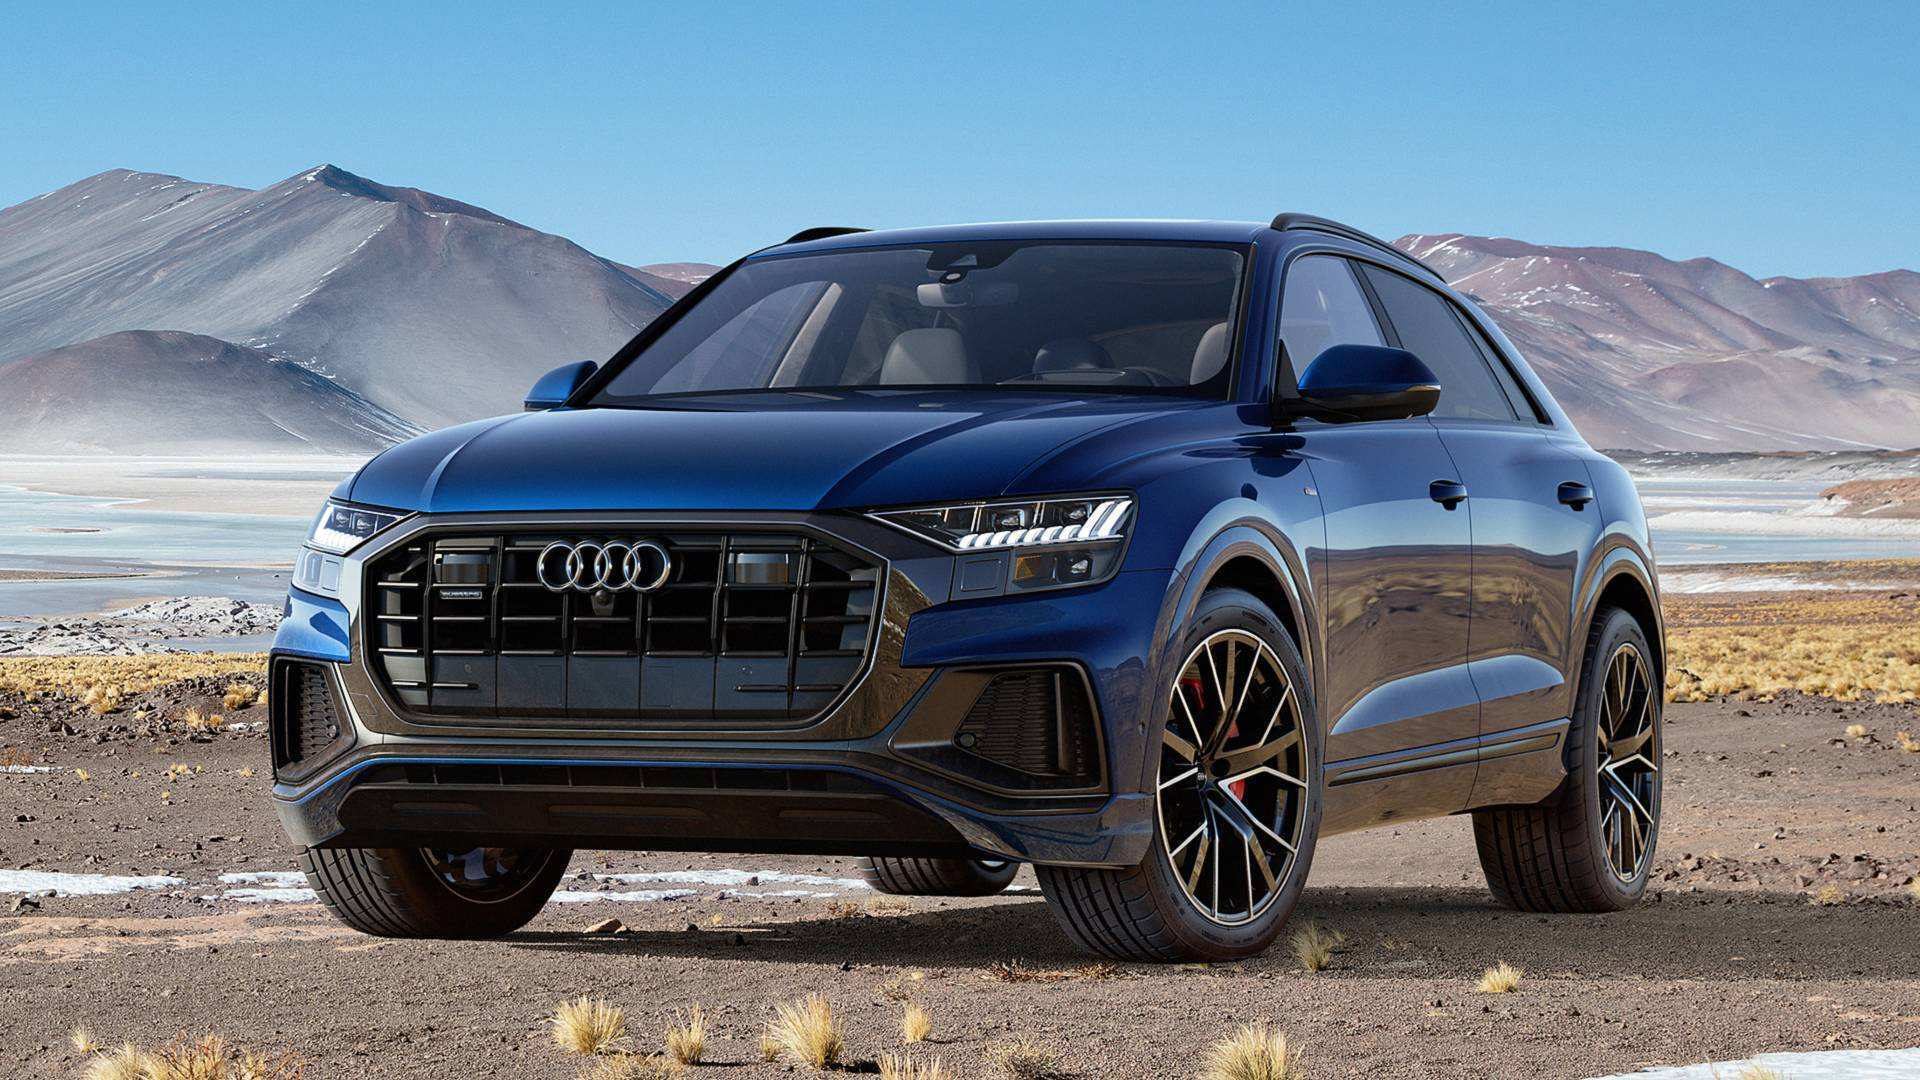 67 The 2019 Audi Hybrid Suv Price And Release Date Picture with 2019 Audi Hybrid Suv Price And Release Date